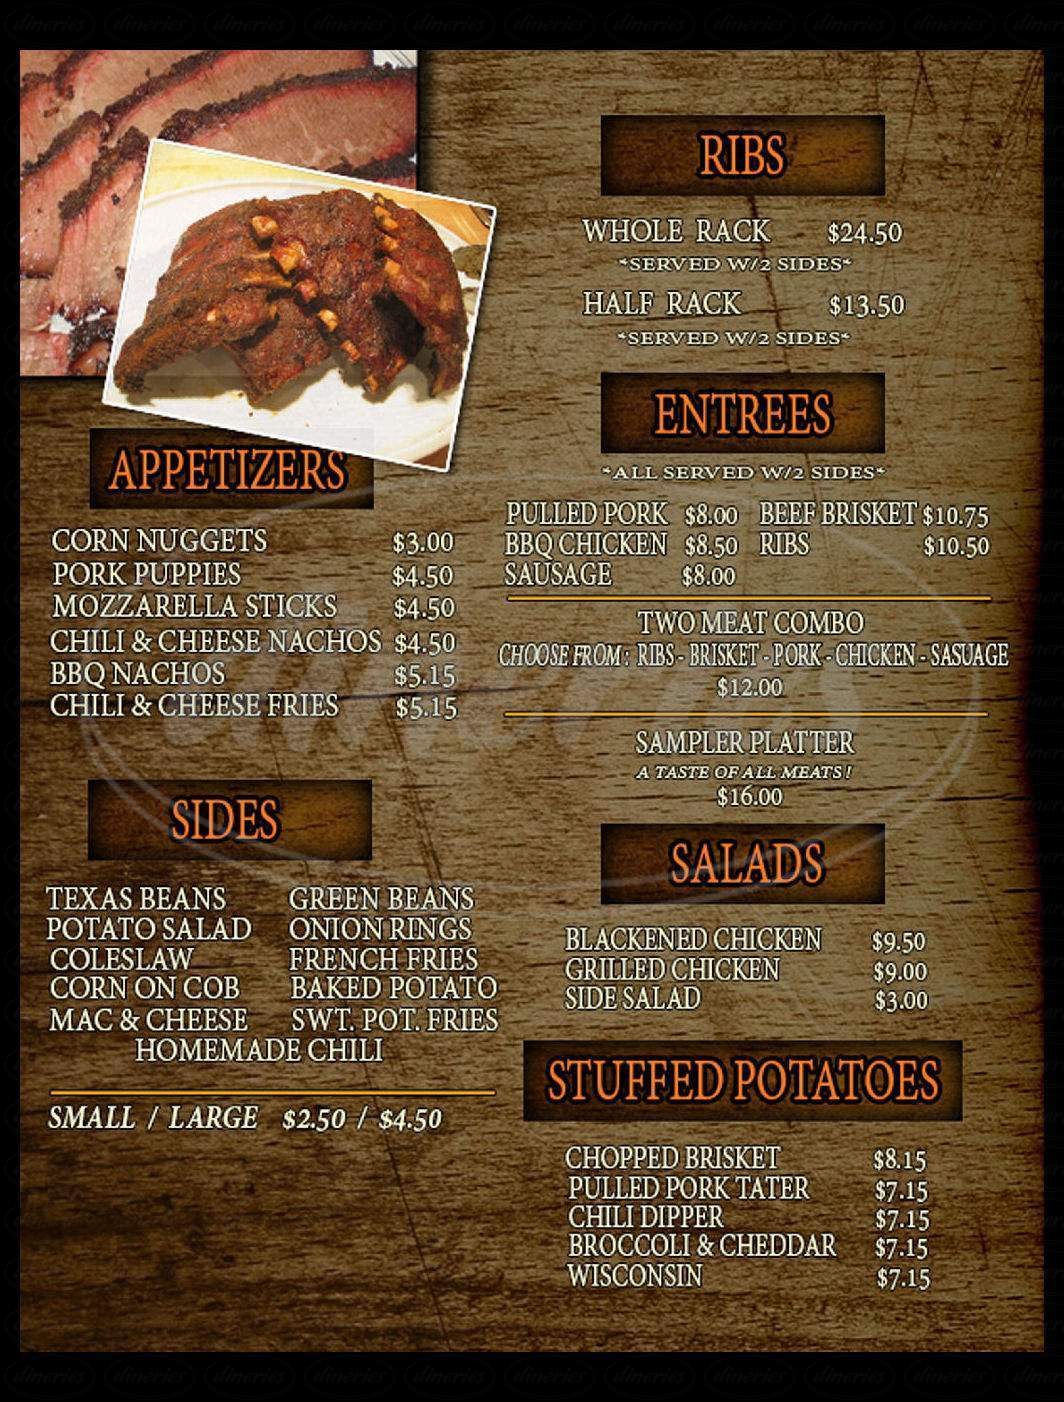 menu for Smokey J's Ribshack